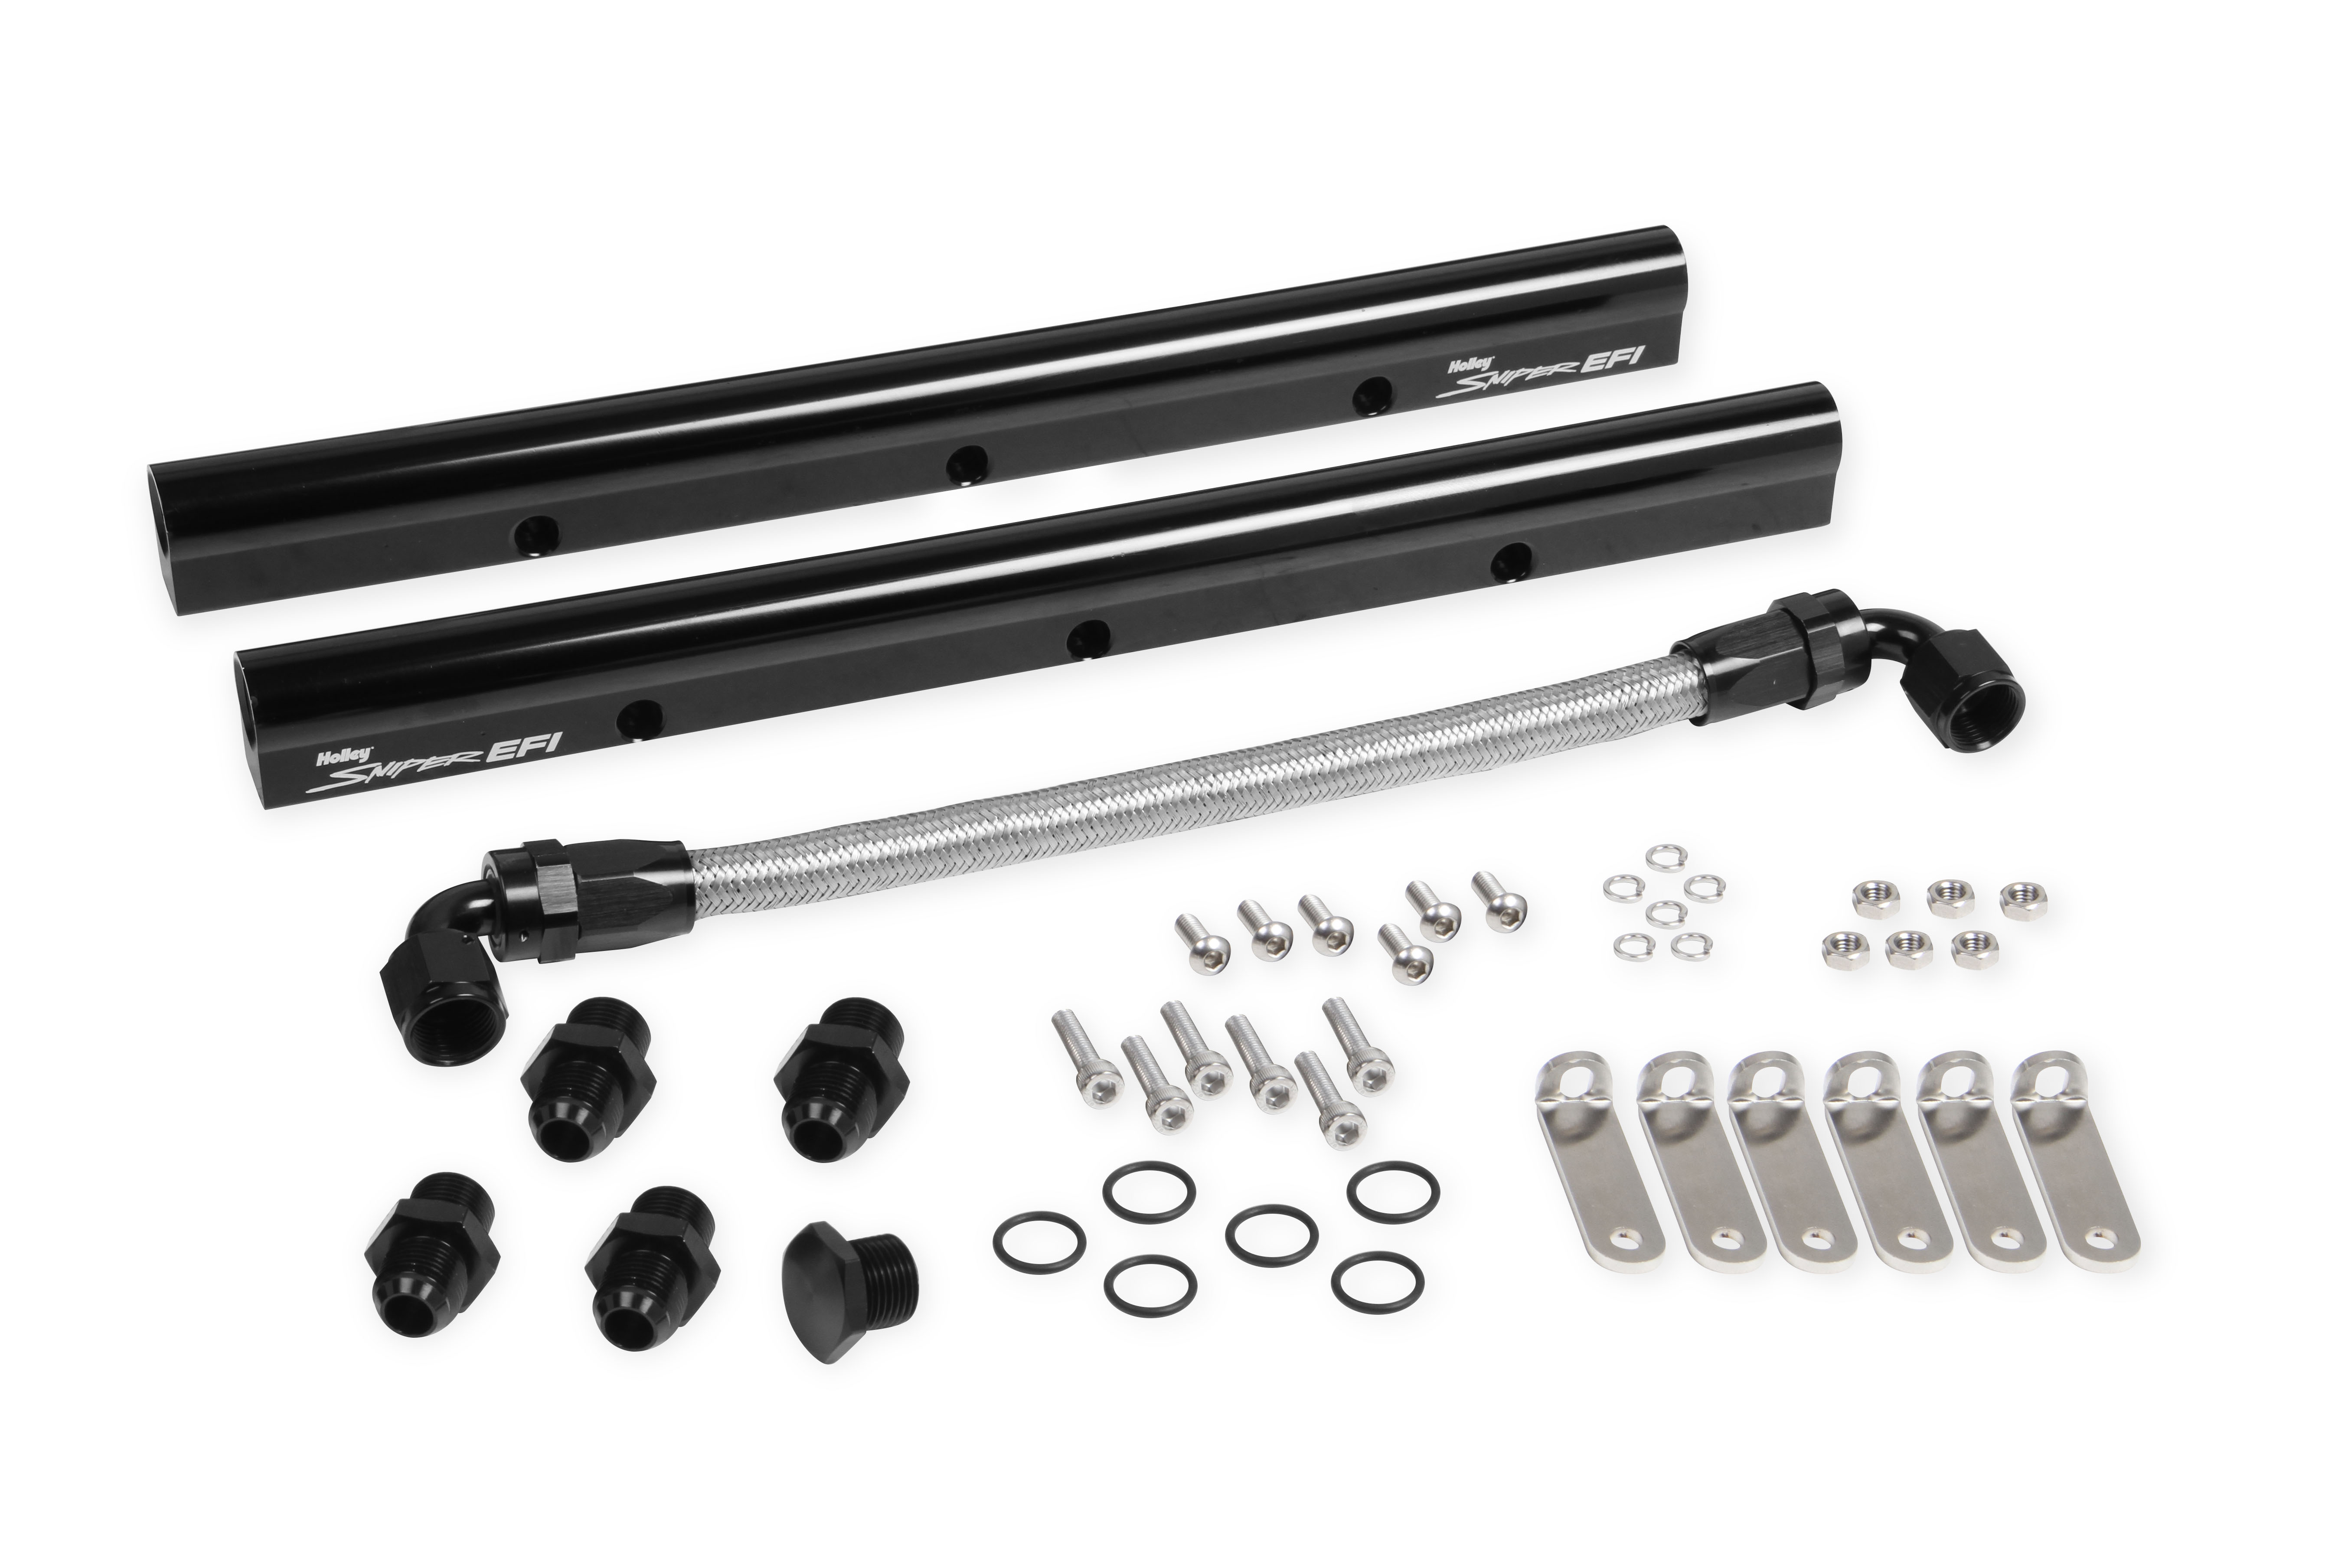 LS7 Holley Sniper Fuel Rail Kit - For Sniper Intake Manifolds